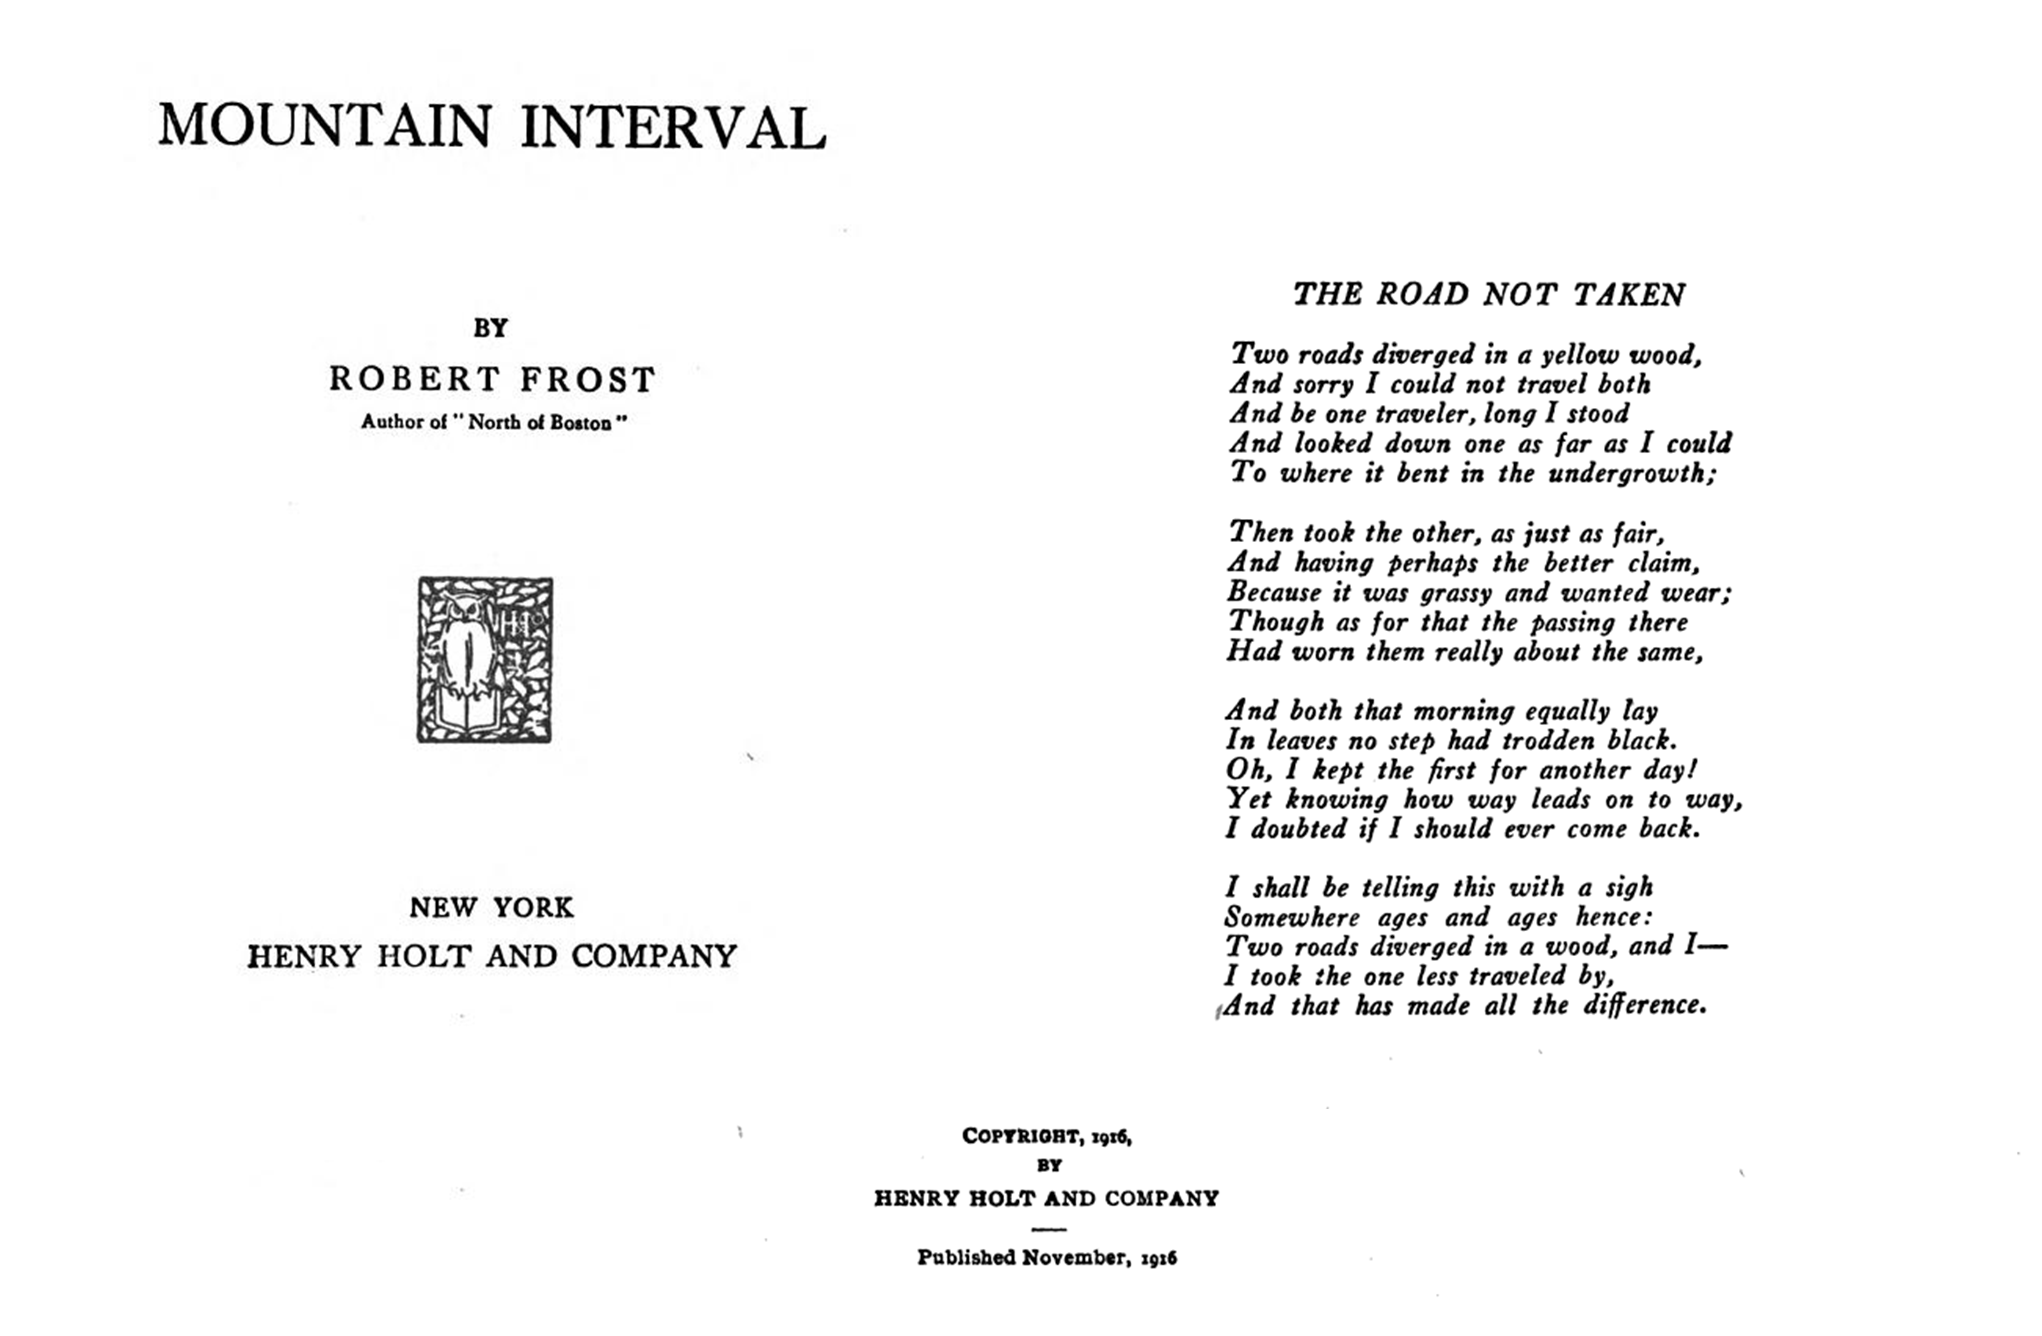 Road Diverging Image Black And White Png - File:The Road Not Taken - Robert Frost.png - Wikipedia